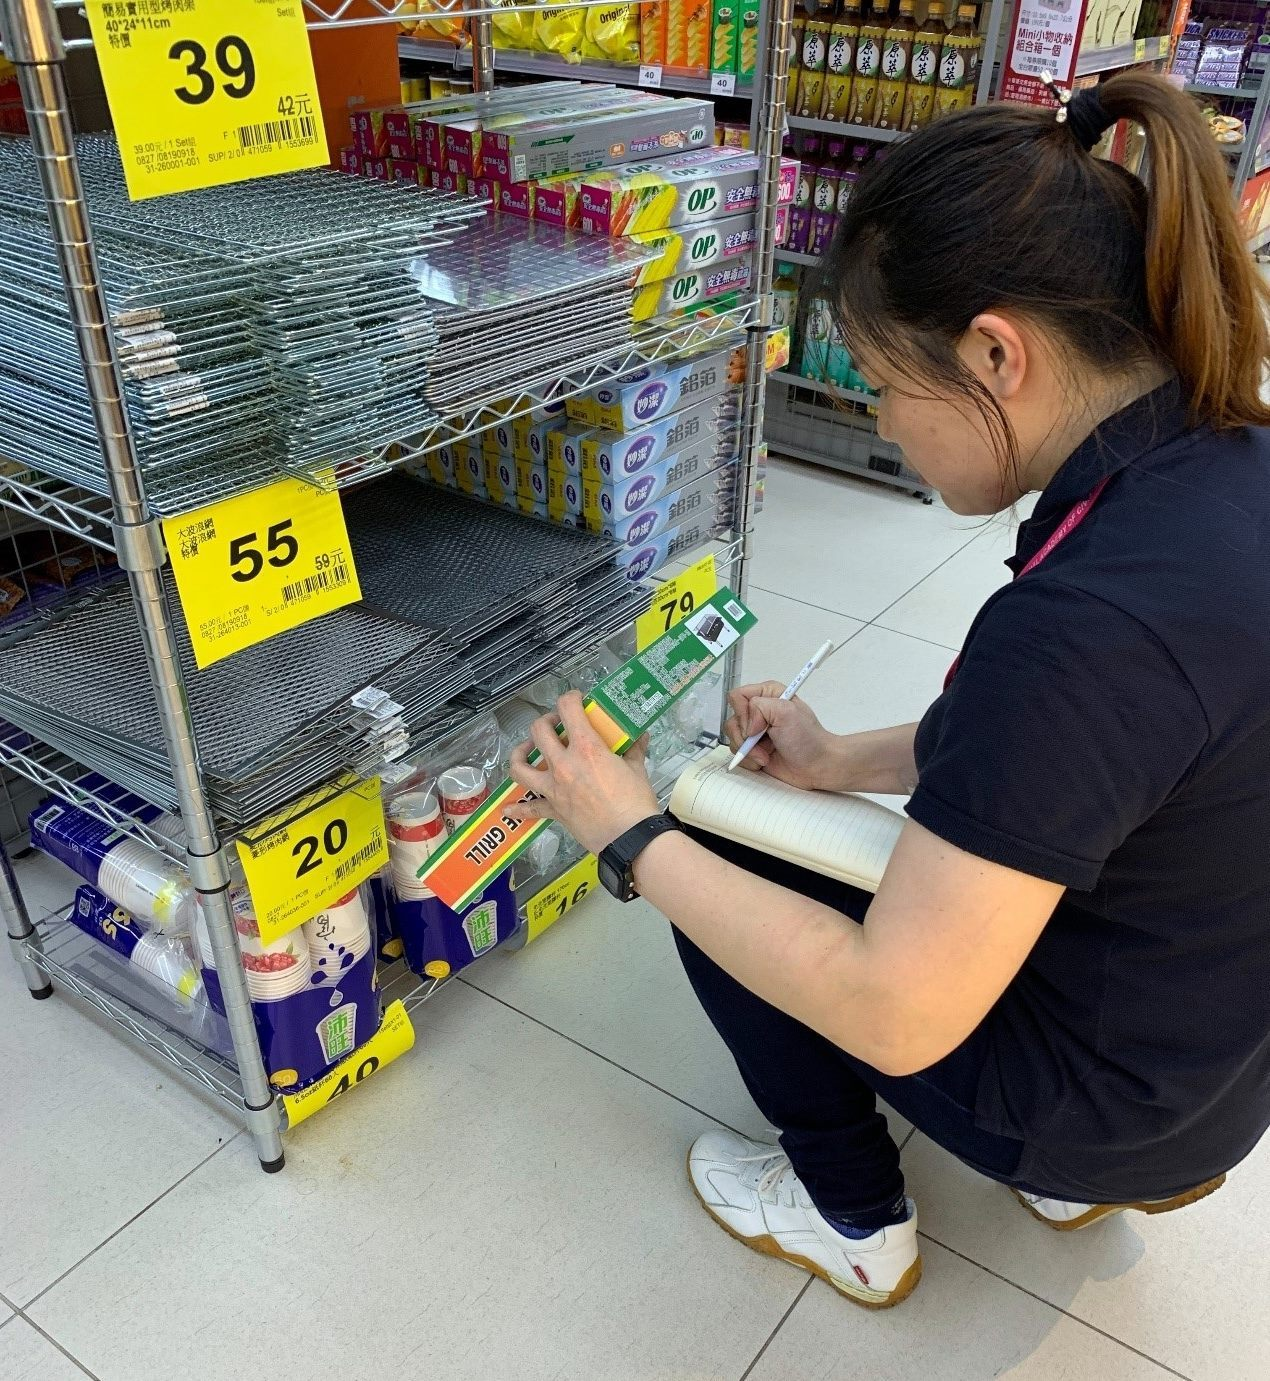 Store staff at big box retailer examining goods used for barbecue